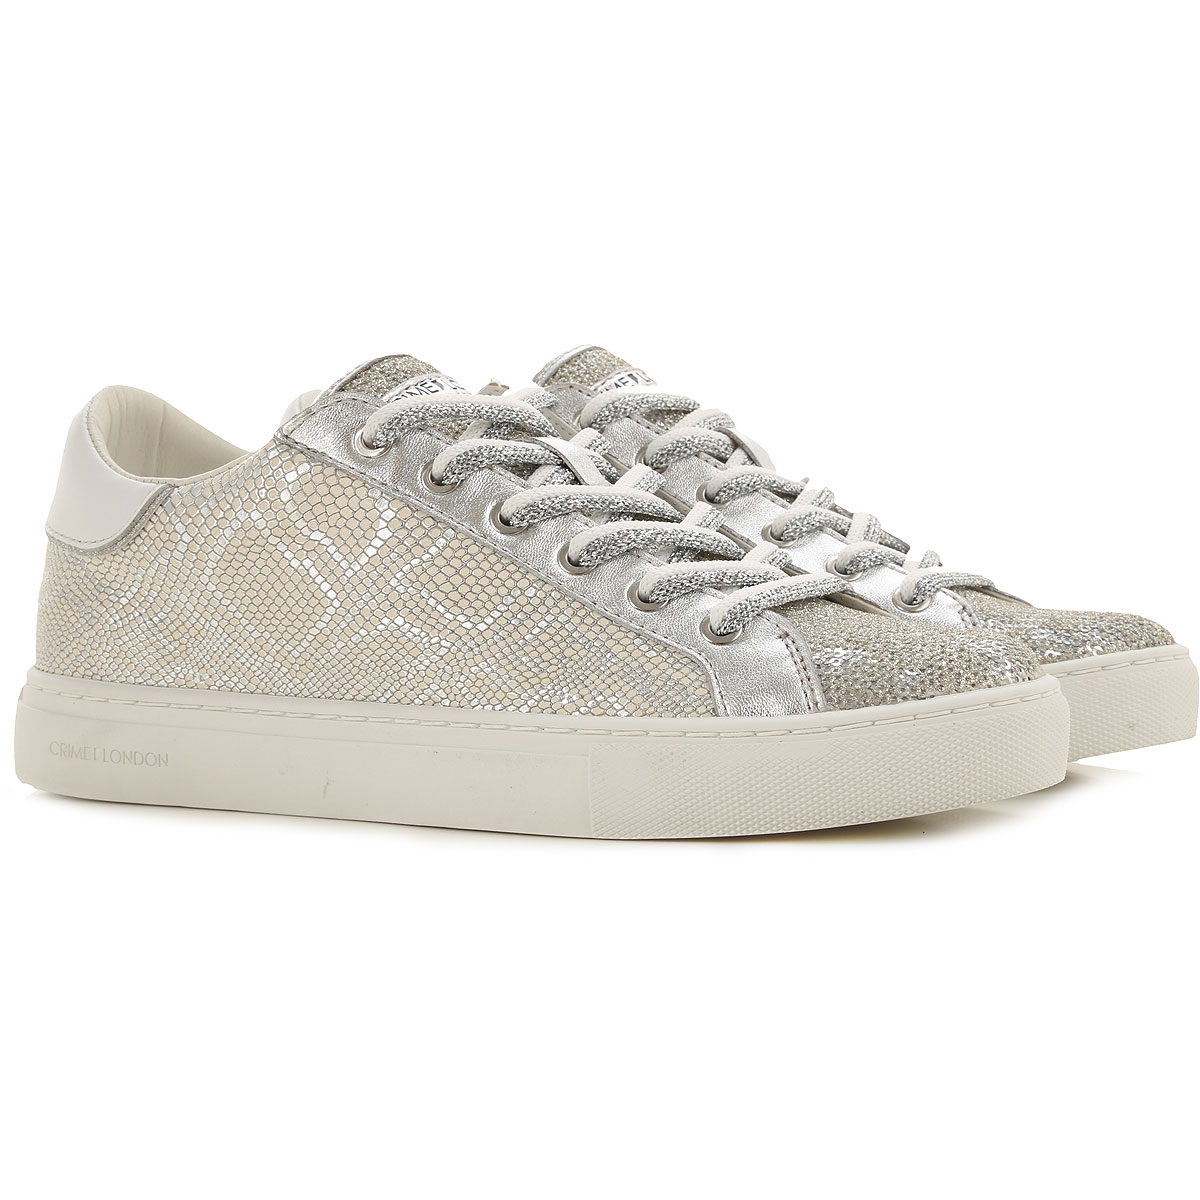 Crime Sneakers for Women On Sale, Silver, Leather, 2019, 10 6 7 8 9